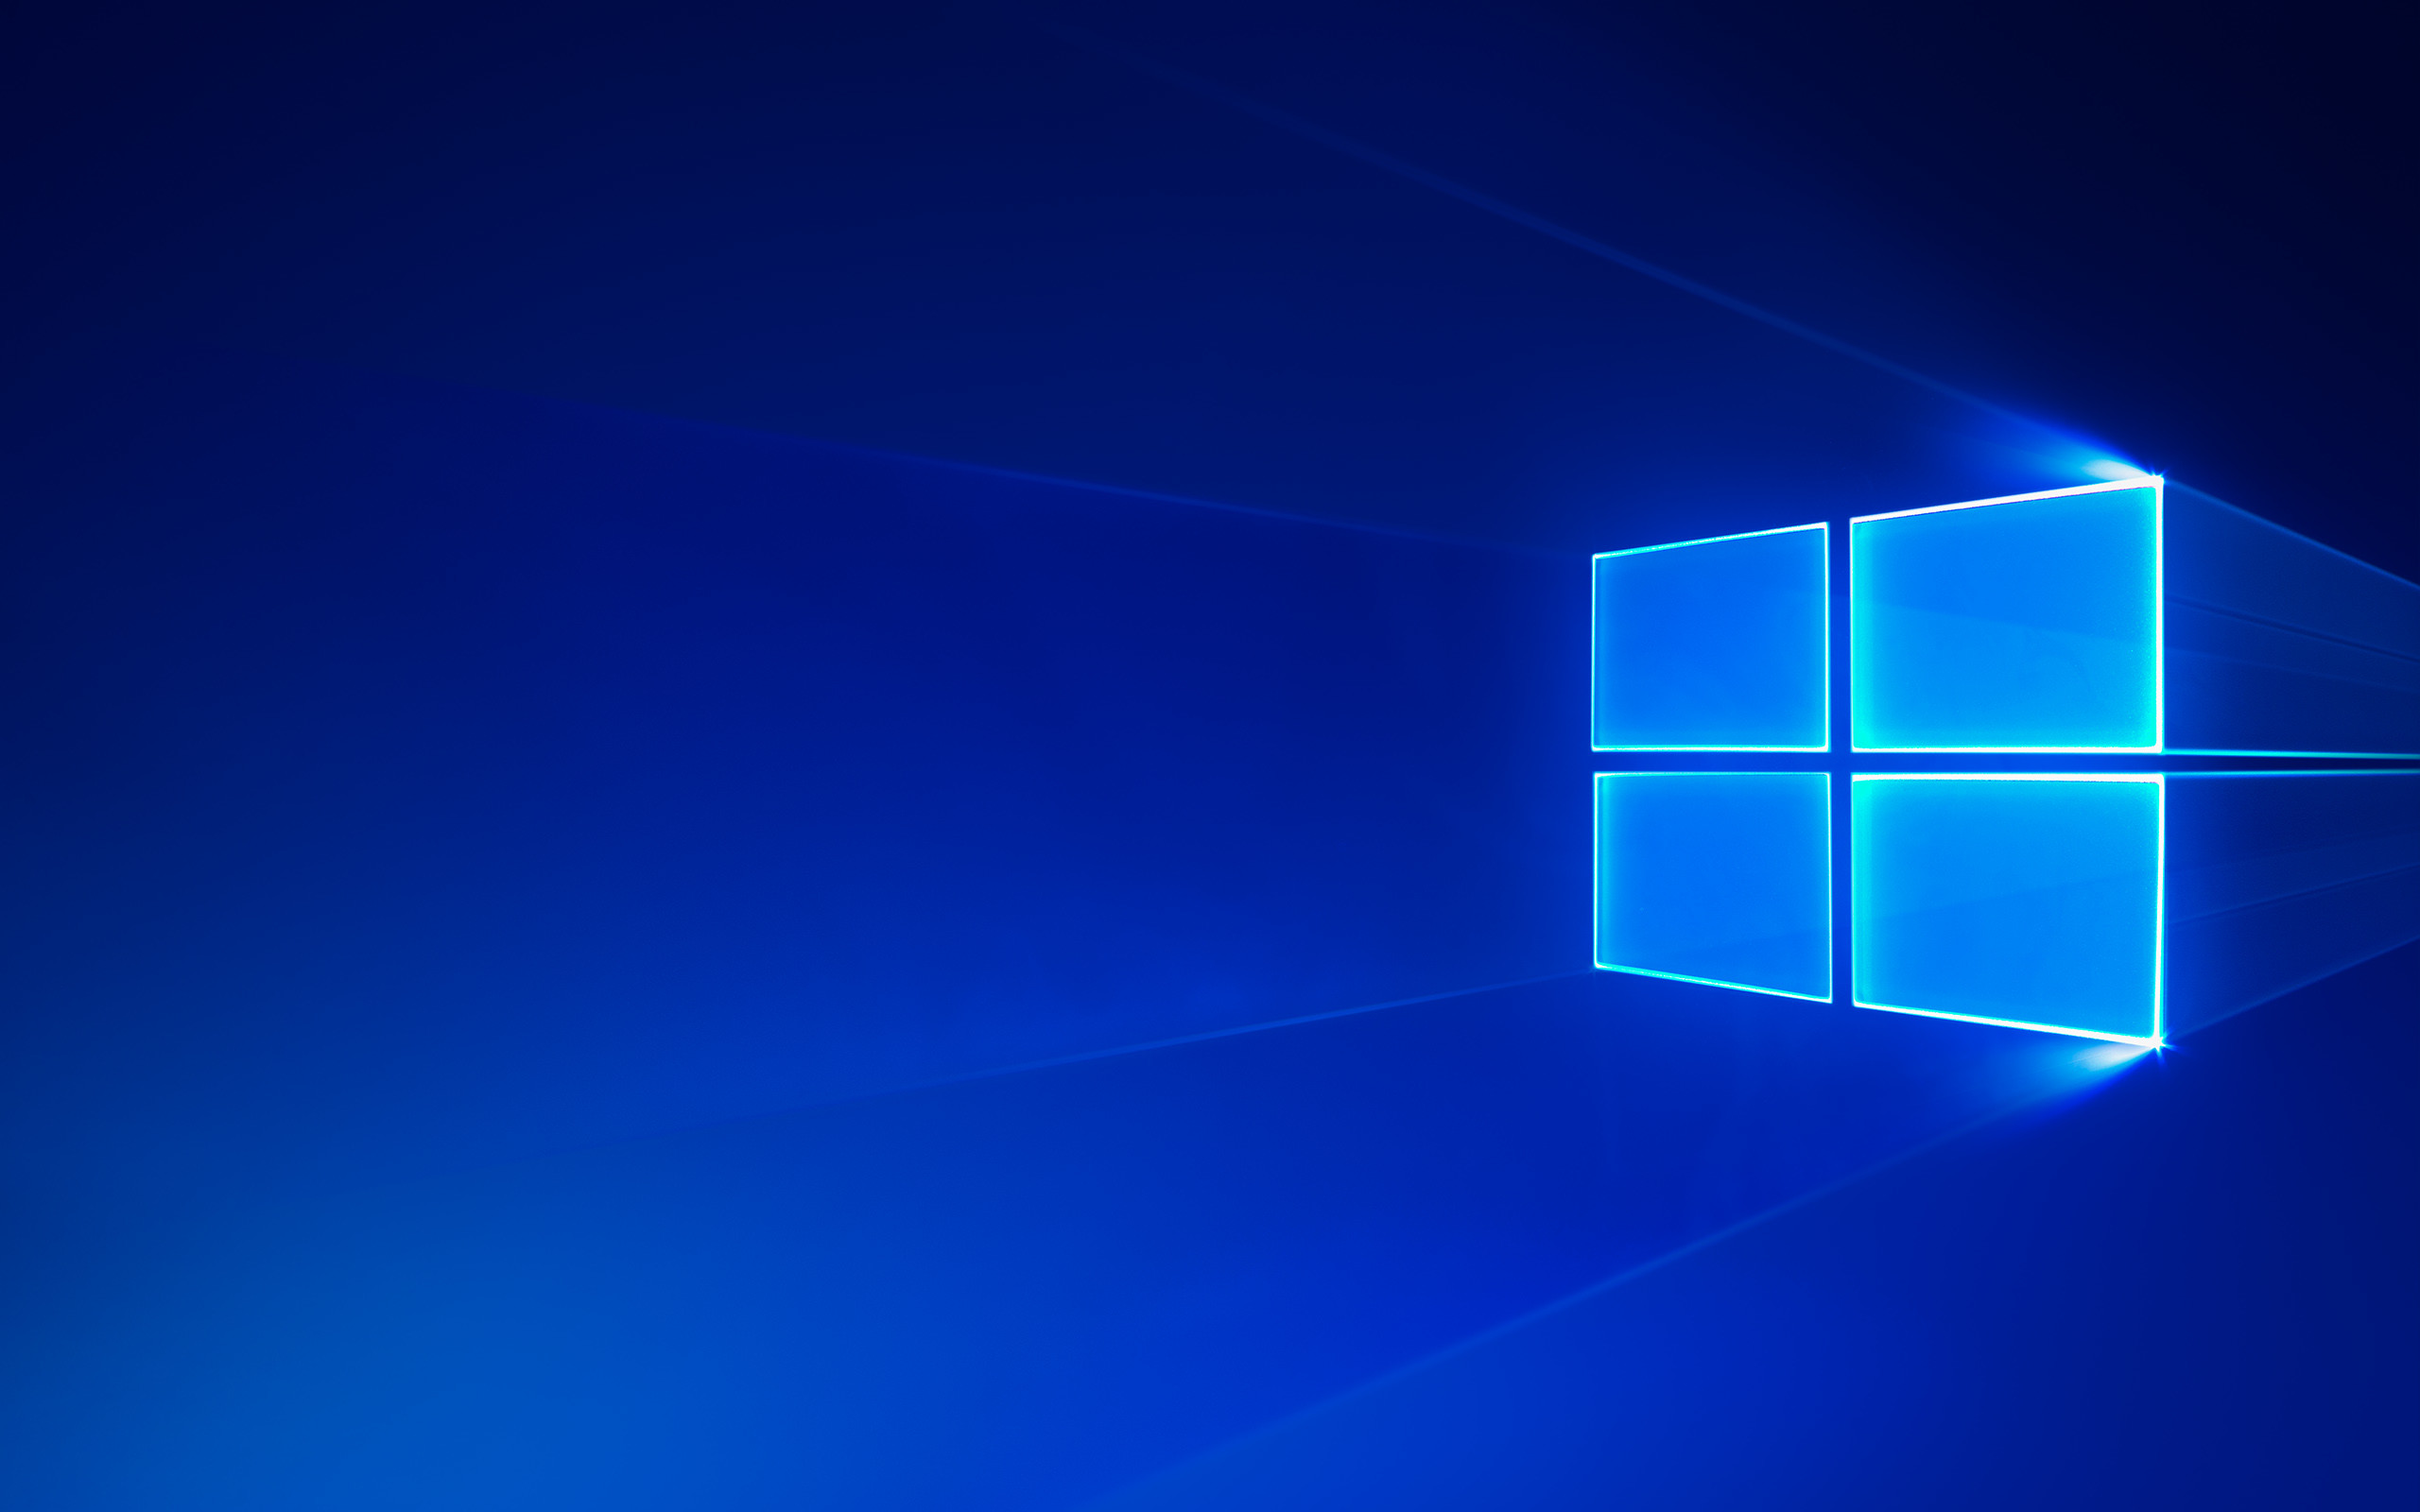 2560x1600 Windows 10: Hero-Wallpaper für den Desktop – Download von Microsoft